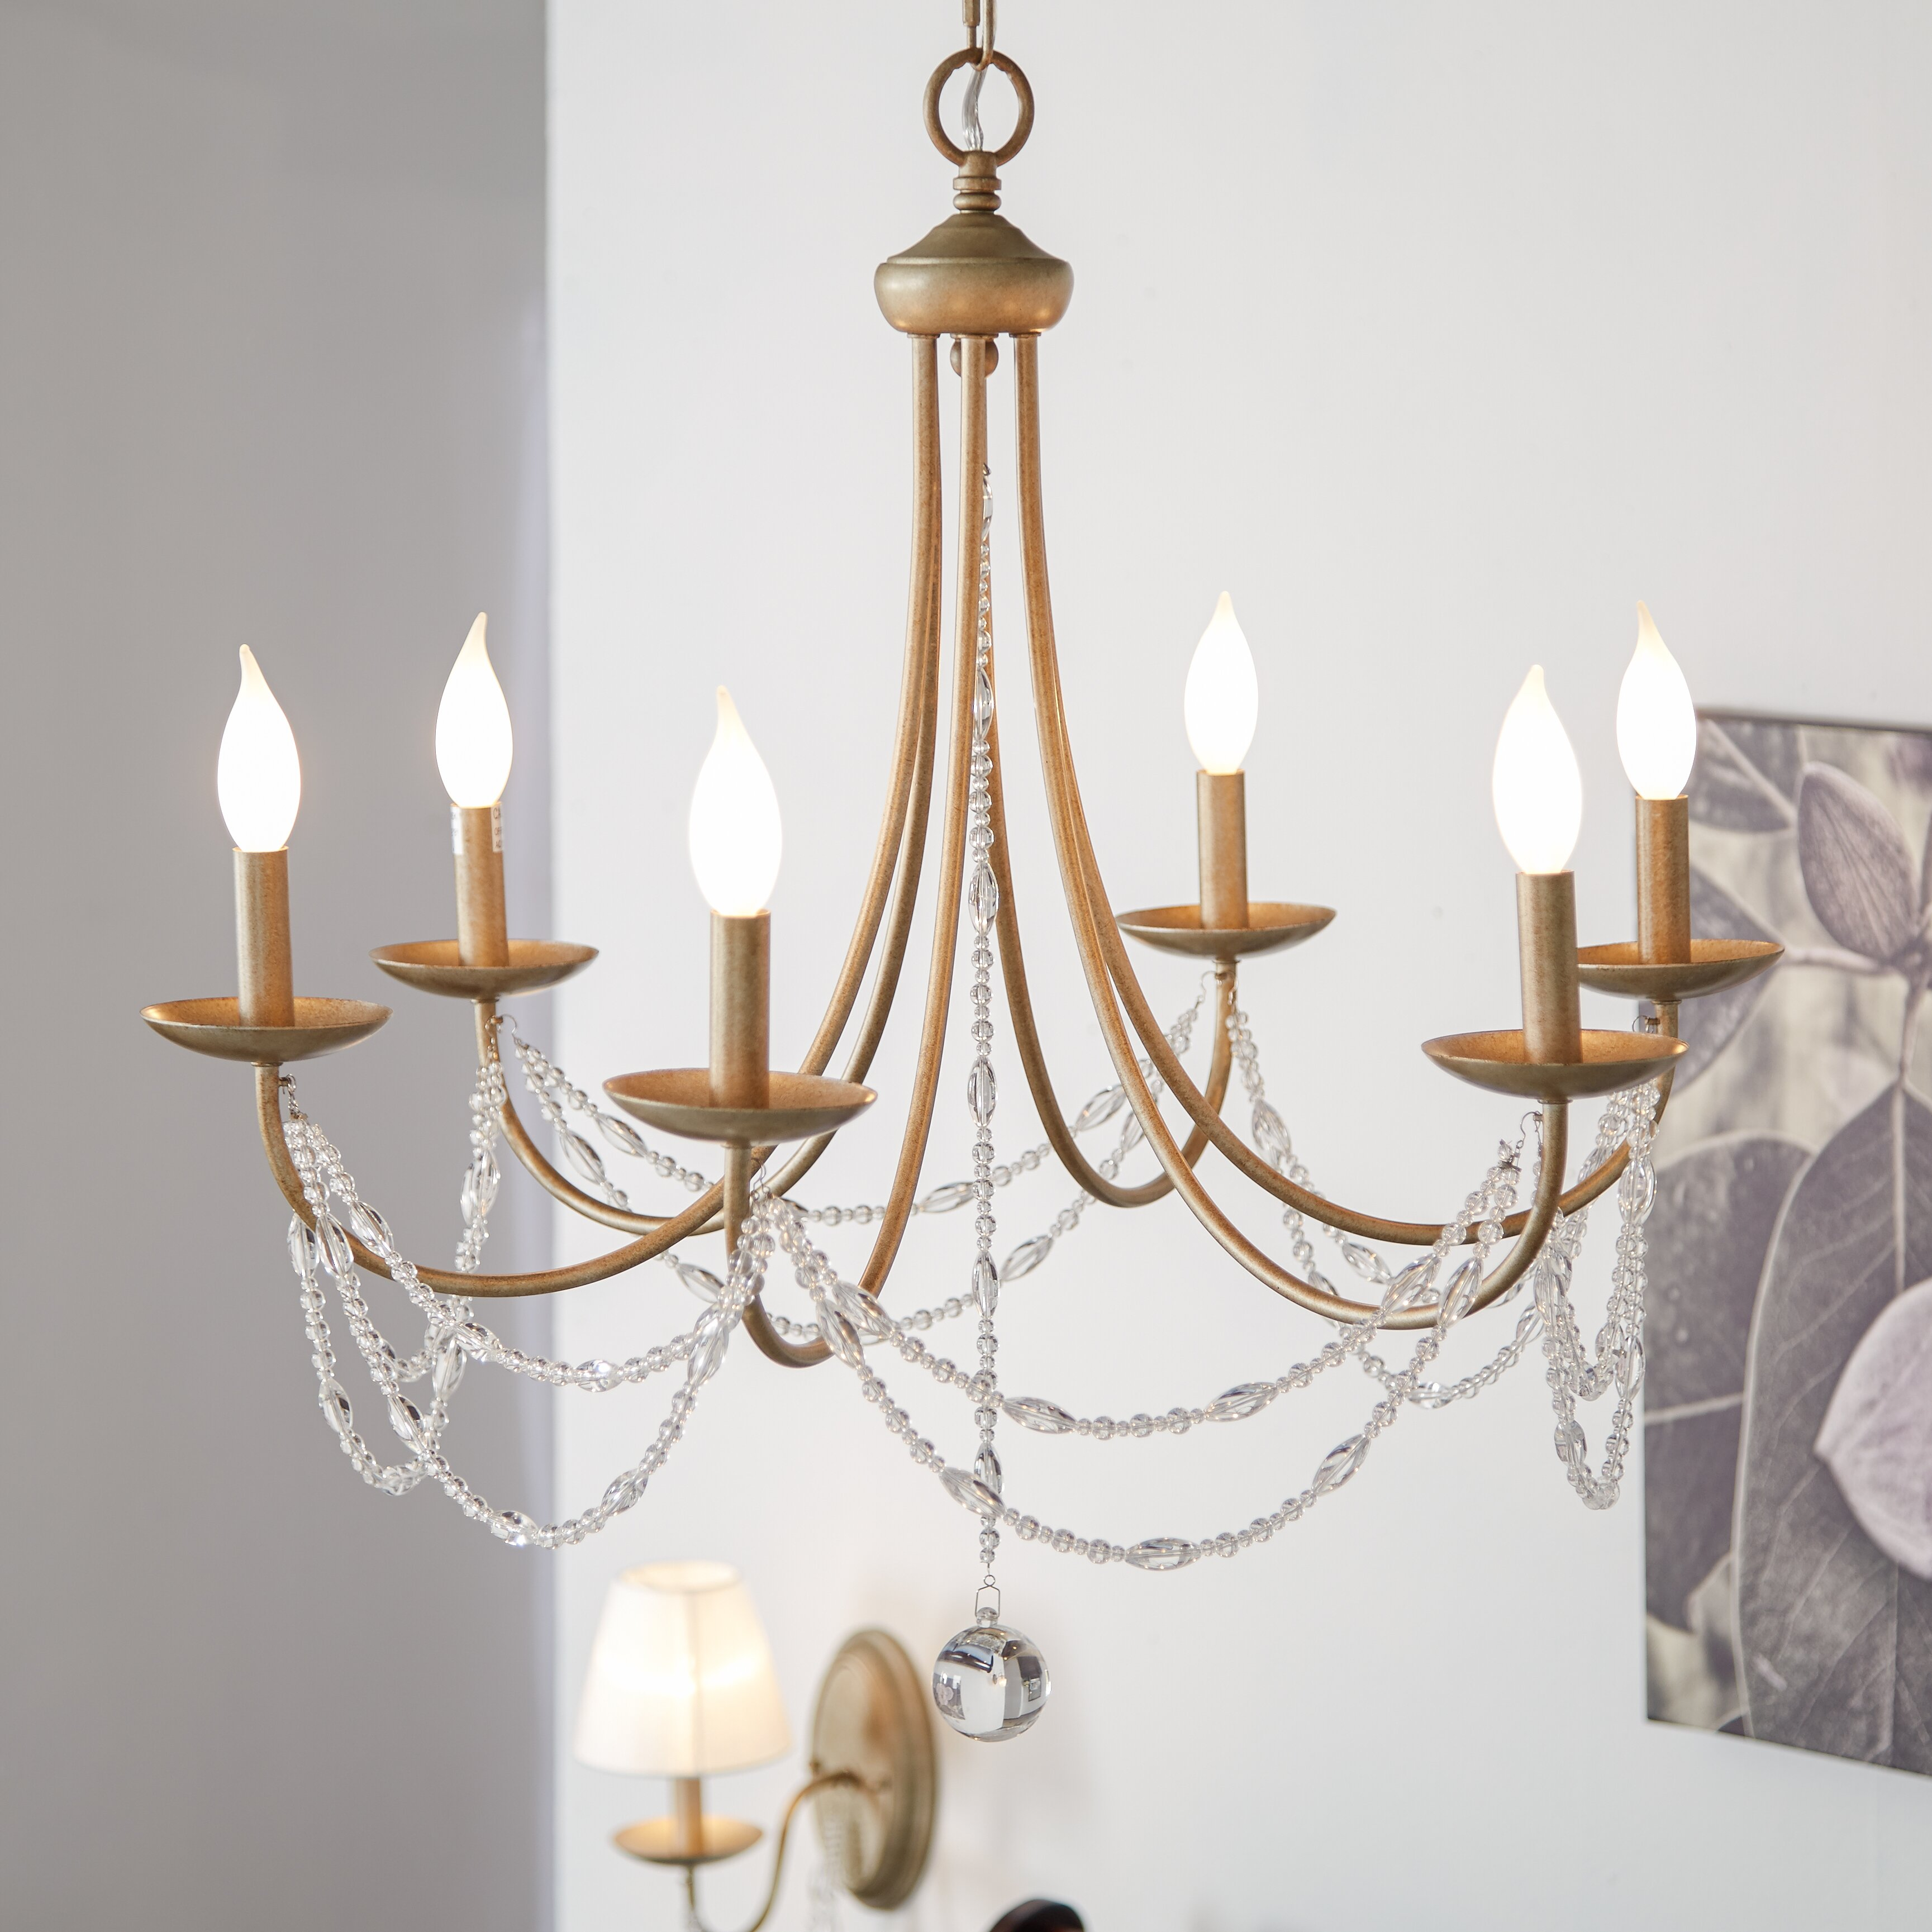 Three Posts Atwood 6-Light Candle-Style Chandelier